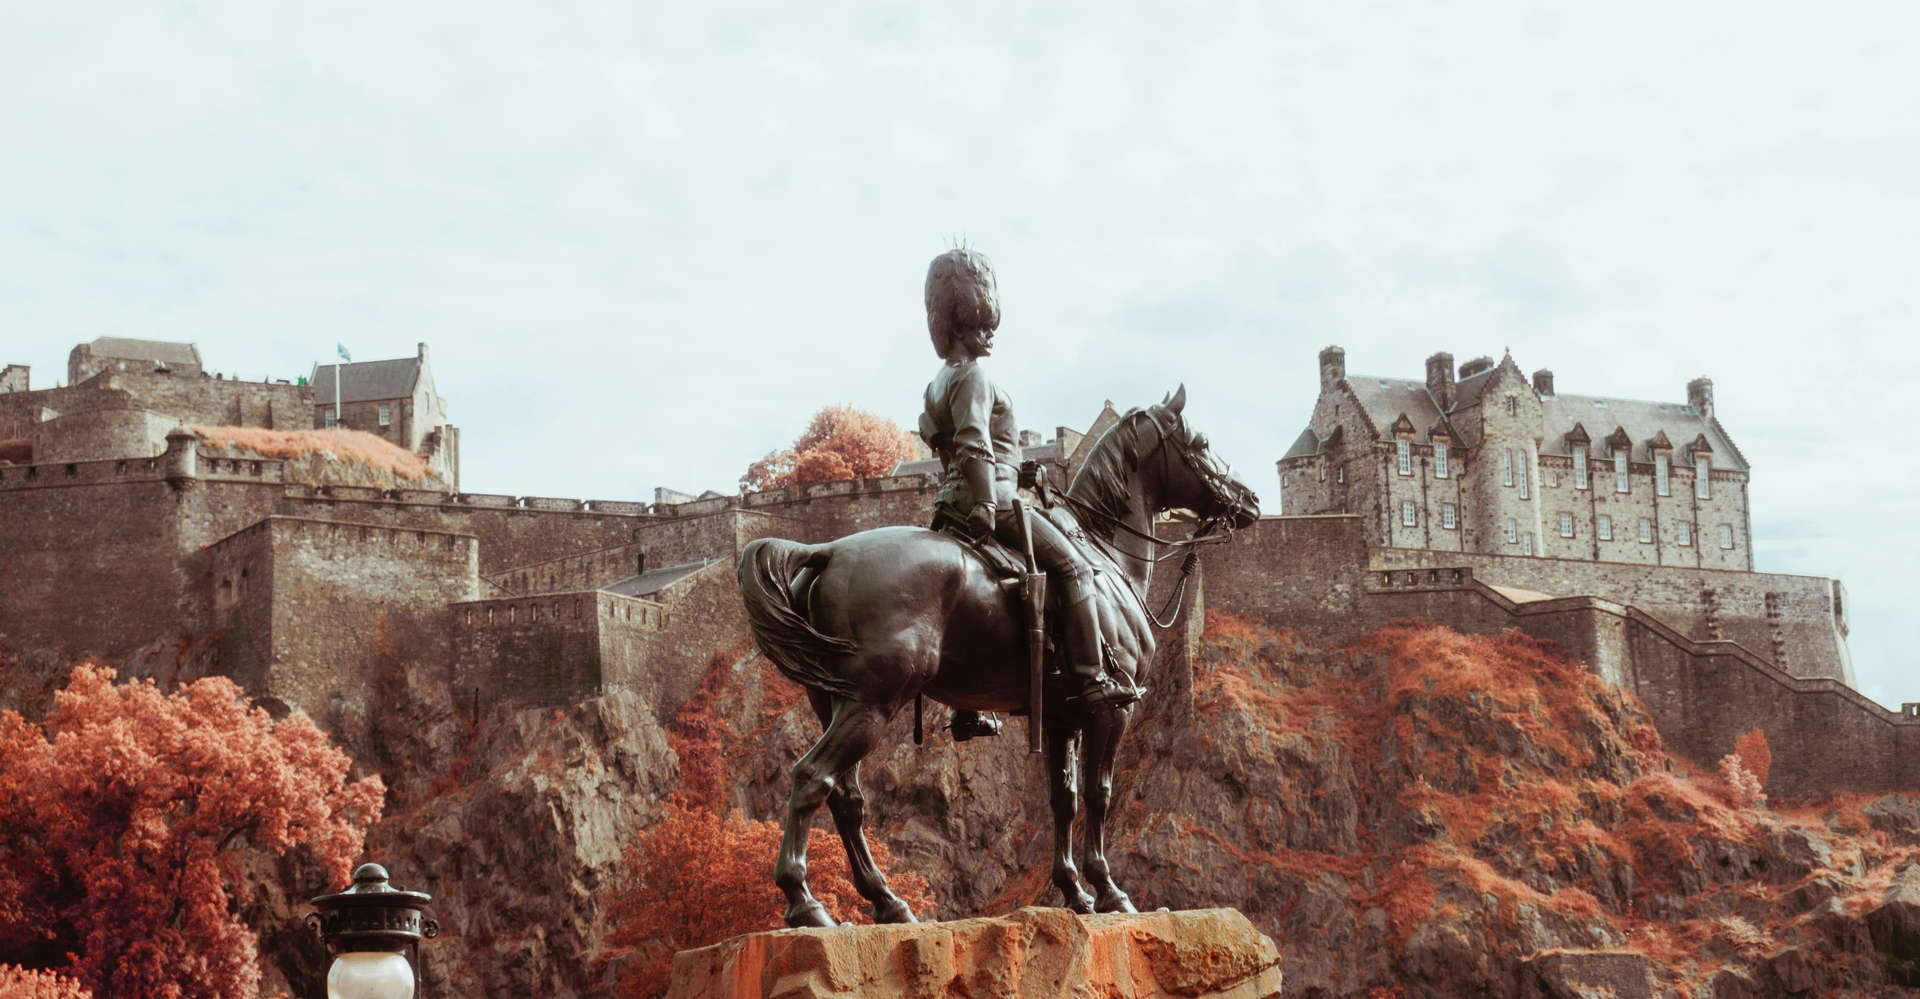 Edinburgh Castle & Statue